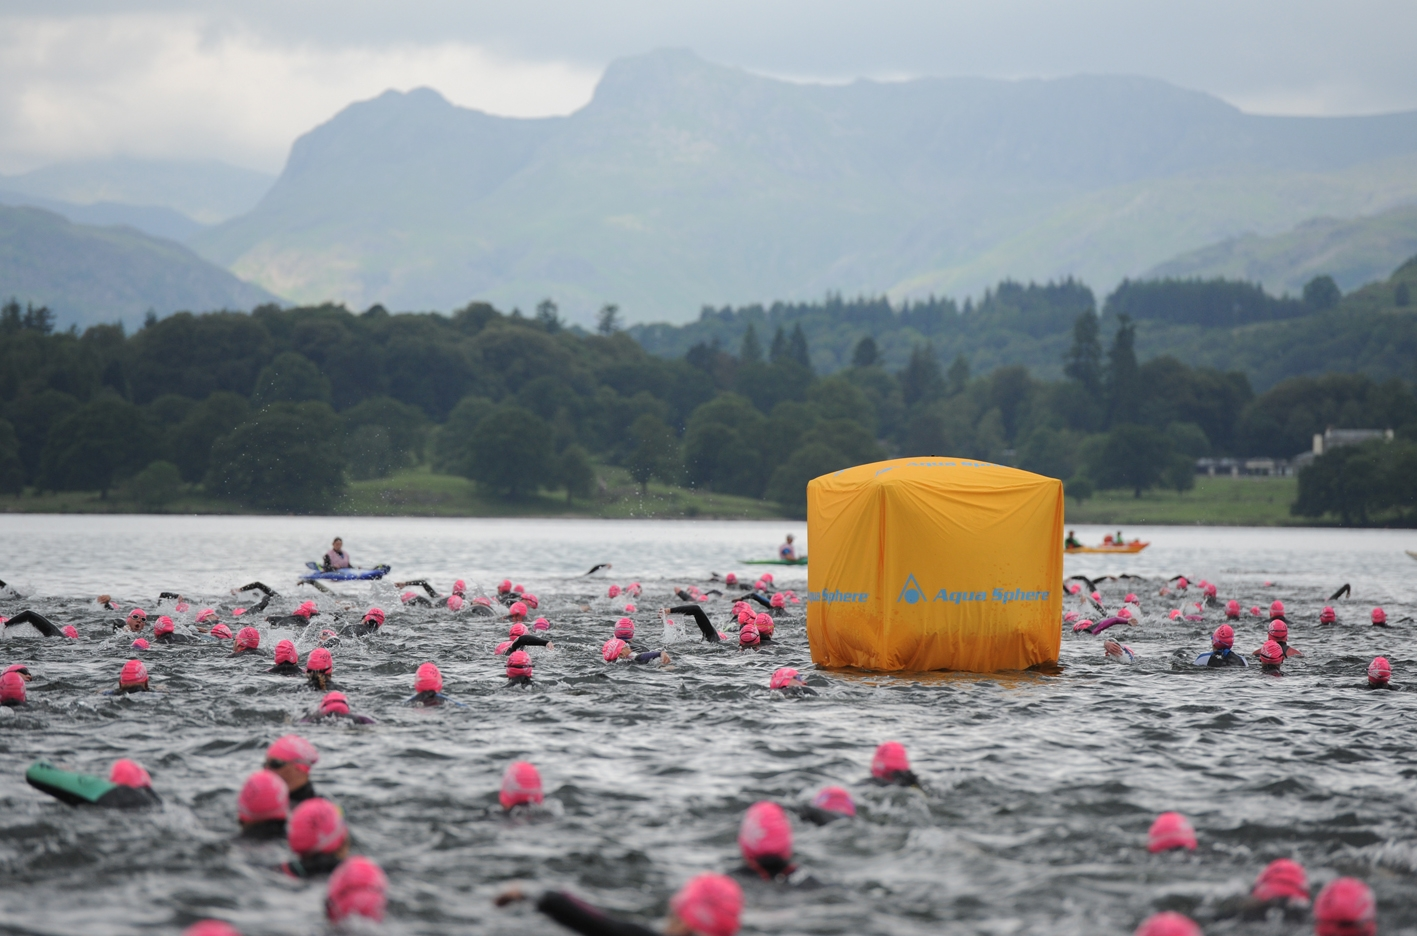 The Great North Swim took place in the Winder